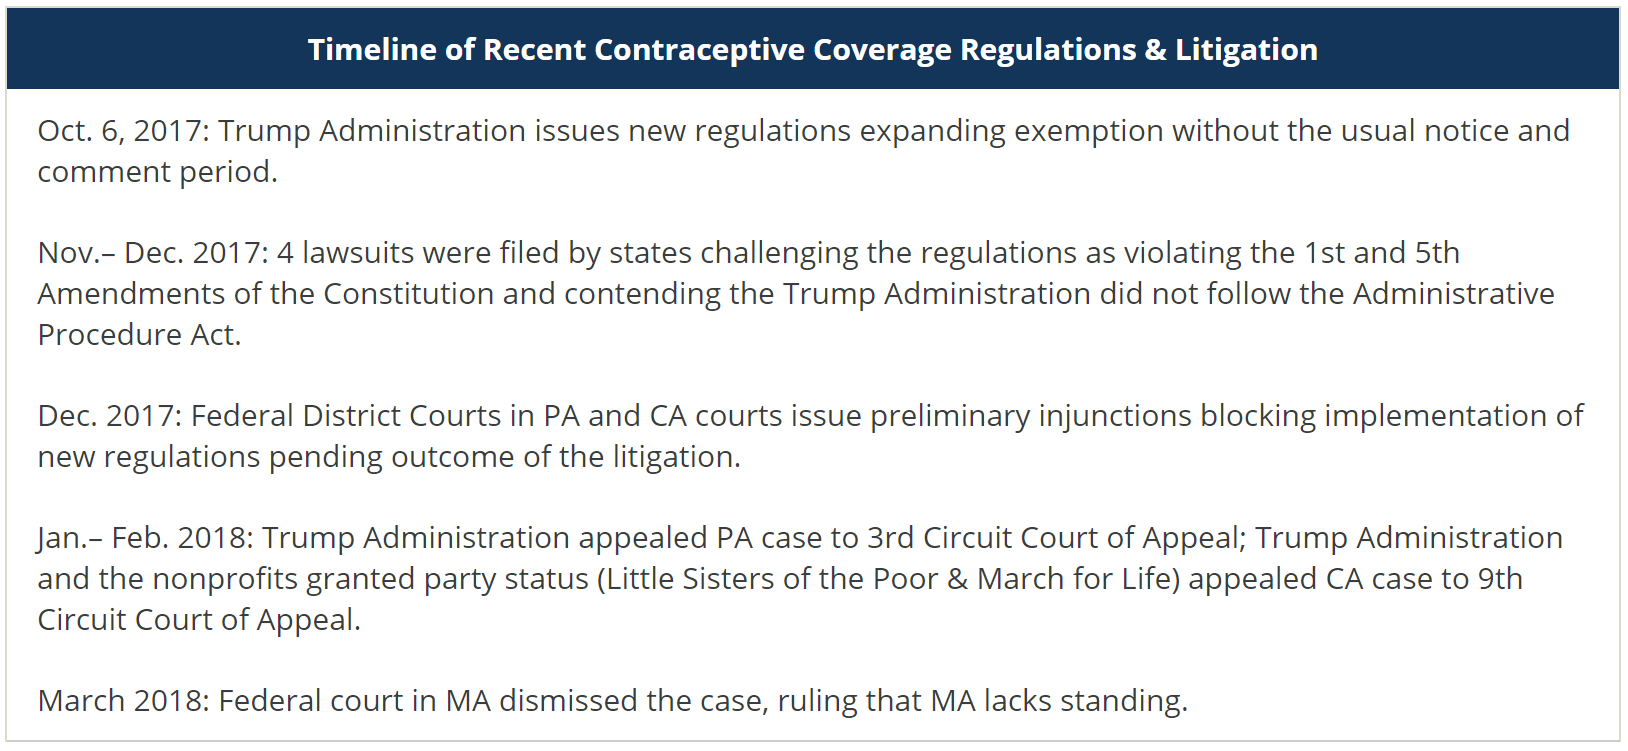 State and Federal Contraceptive Coverage Requirements